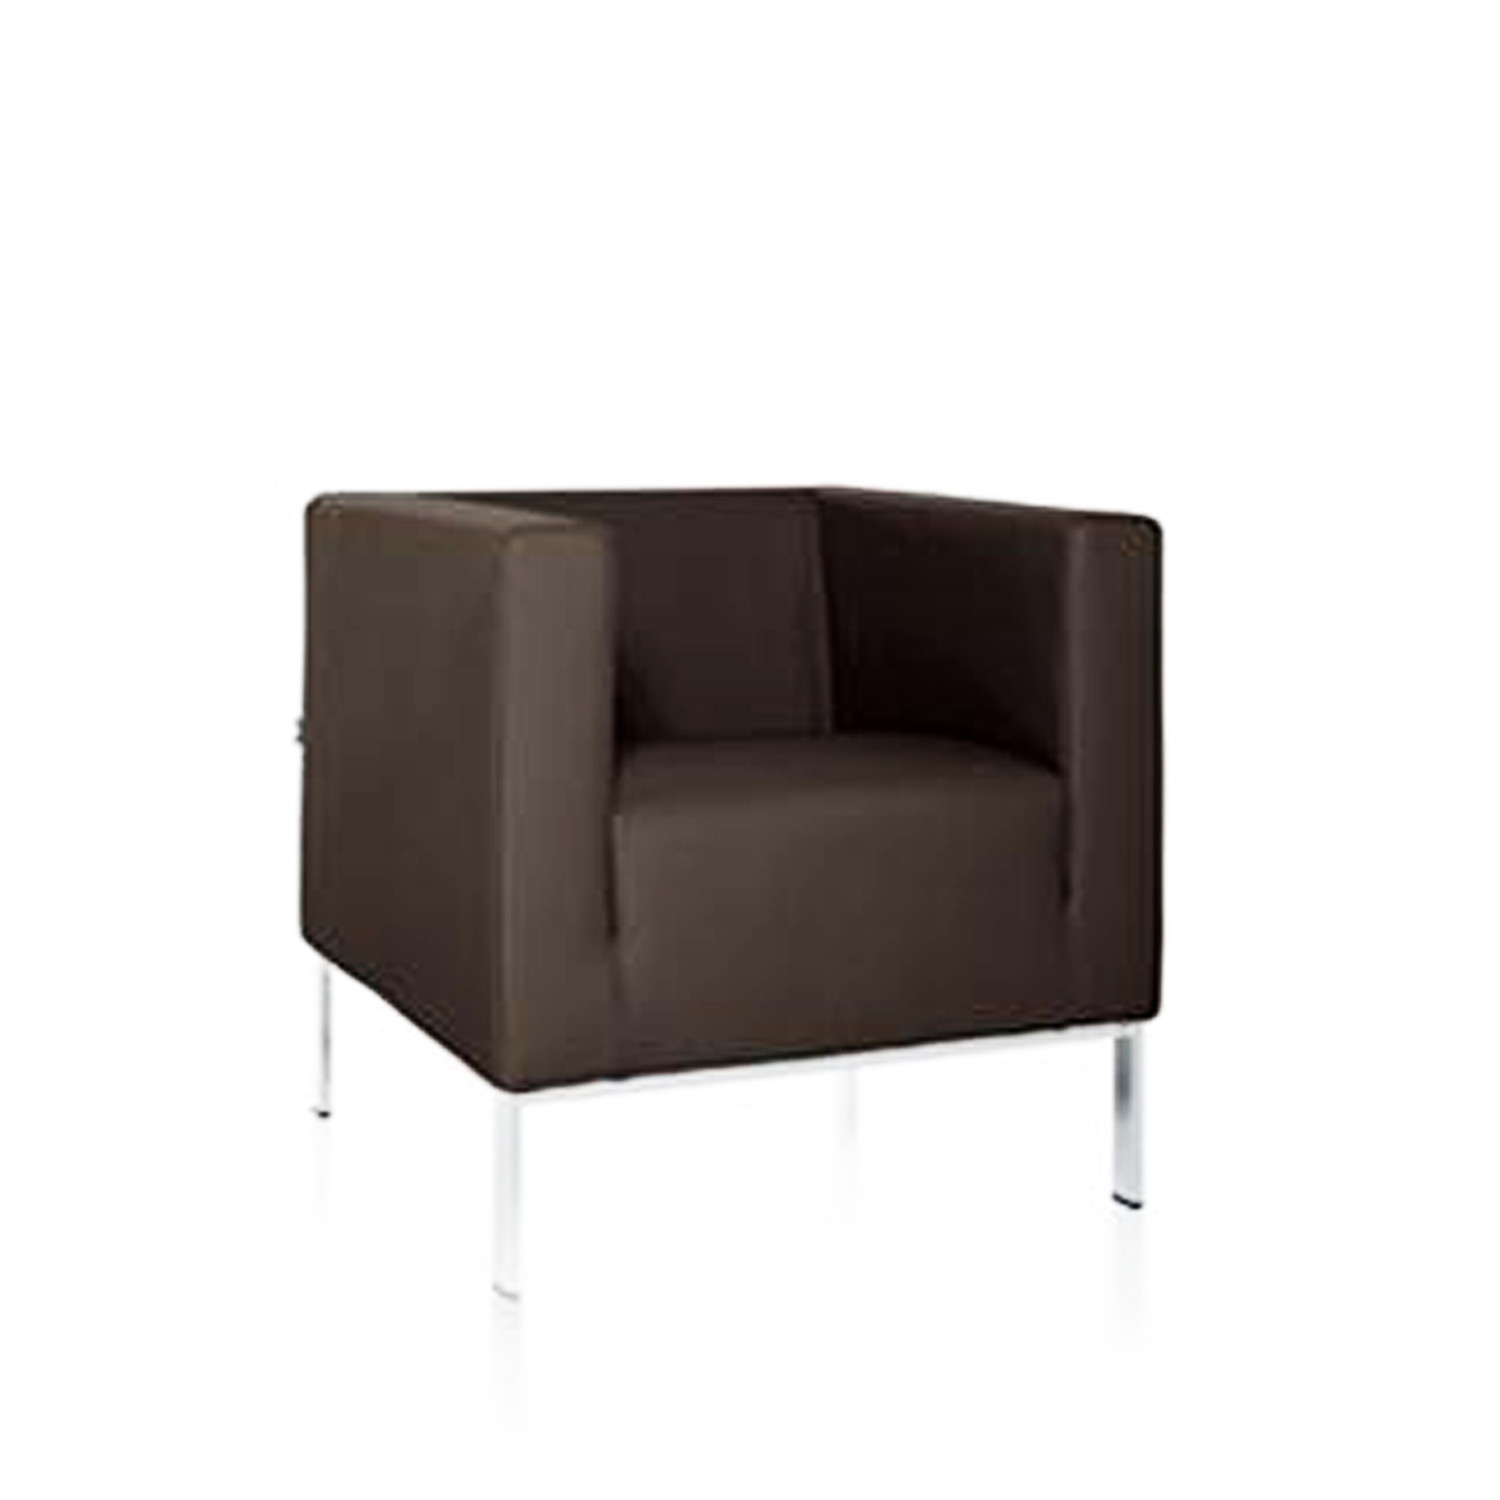 Square Soft Seating from ICF Spa